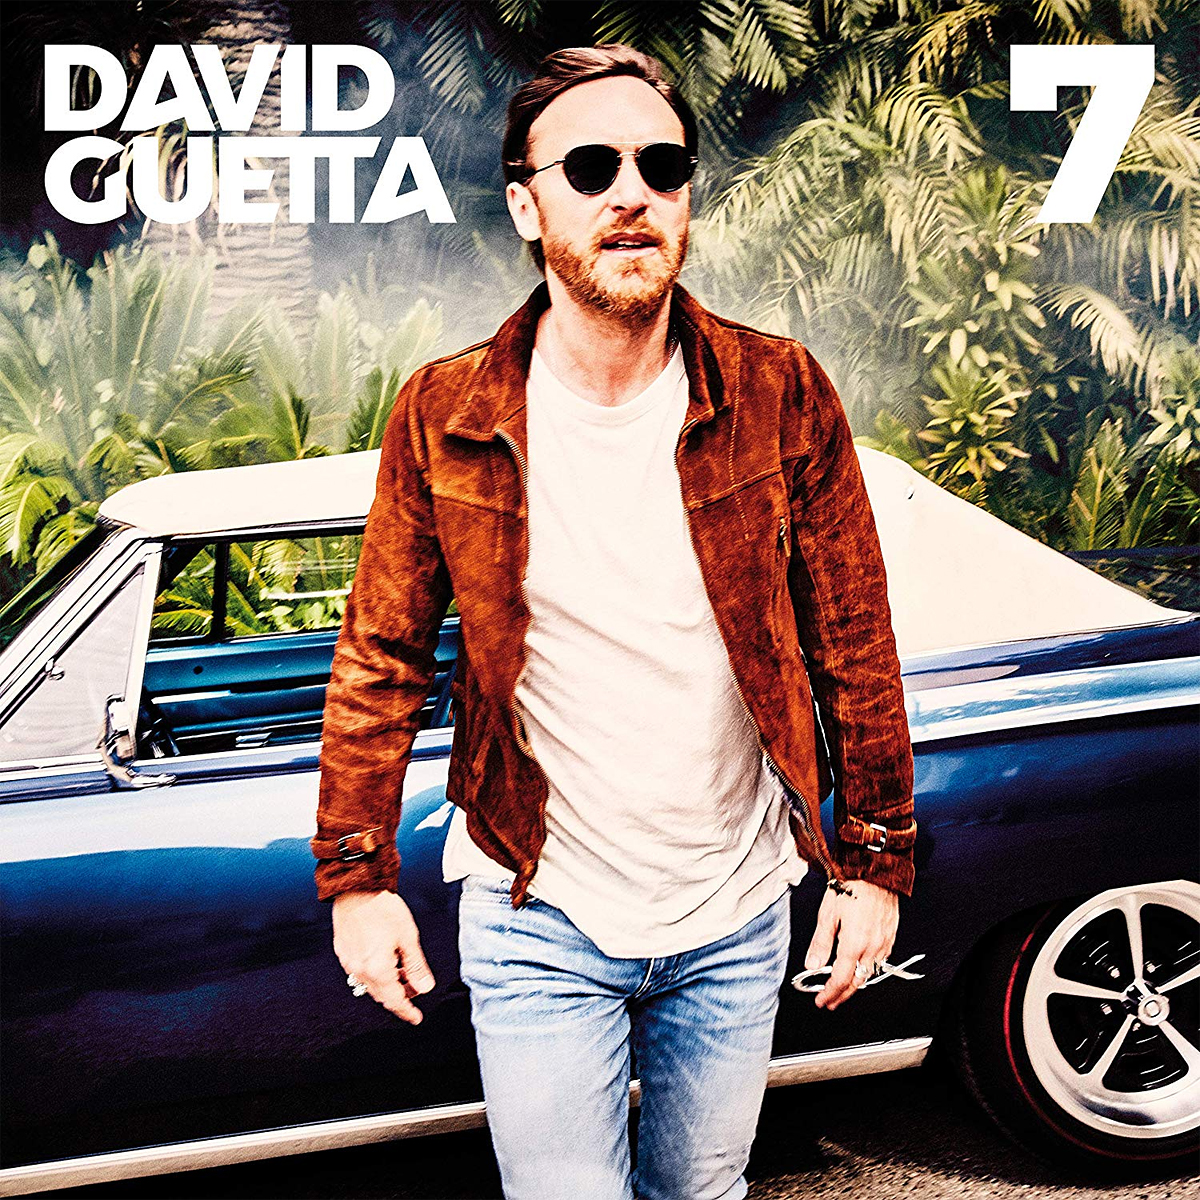 Дэвид Гетта David Guetta. 7 (2 LP) дэвид гетта самуэль денисон мартин david guetta feat sam martin dangerous remix ep